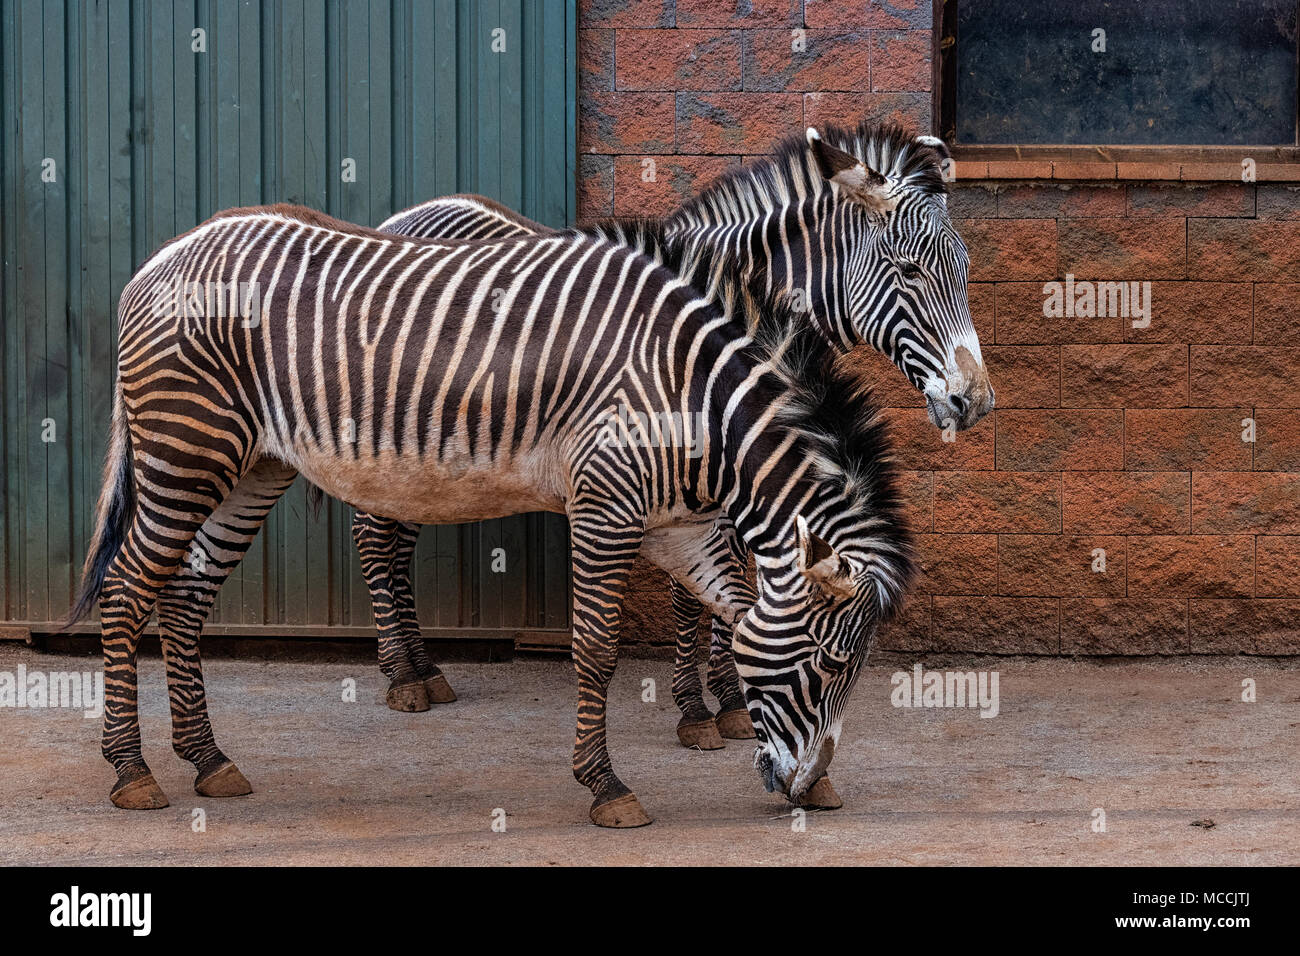 The Grevy's zebra (Equus grevyi), also known as the imperial zebra, is the largest living wild equid and the largest and most threatened of the three  Stock Photo